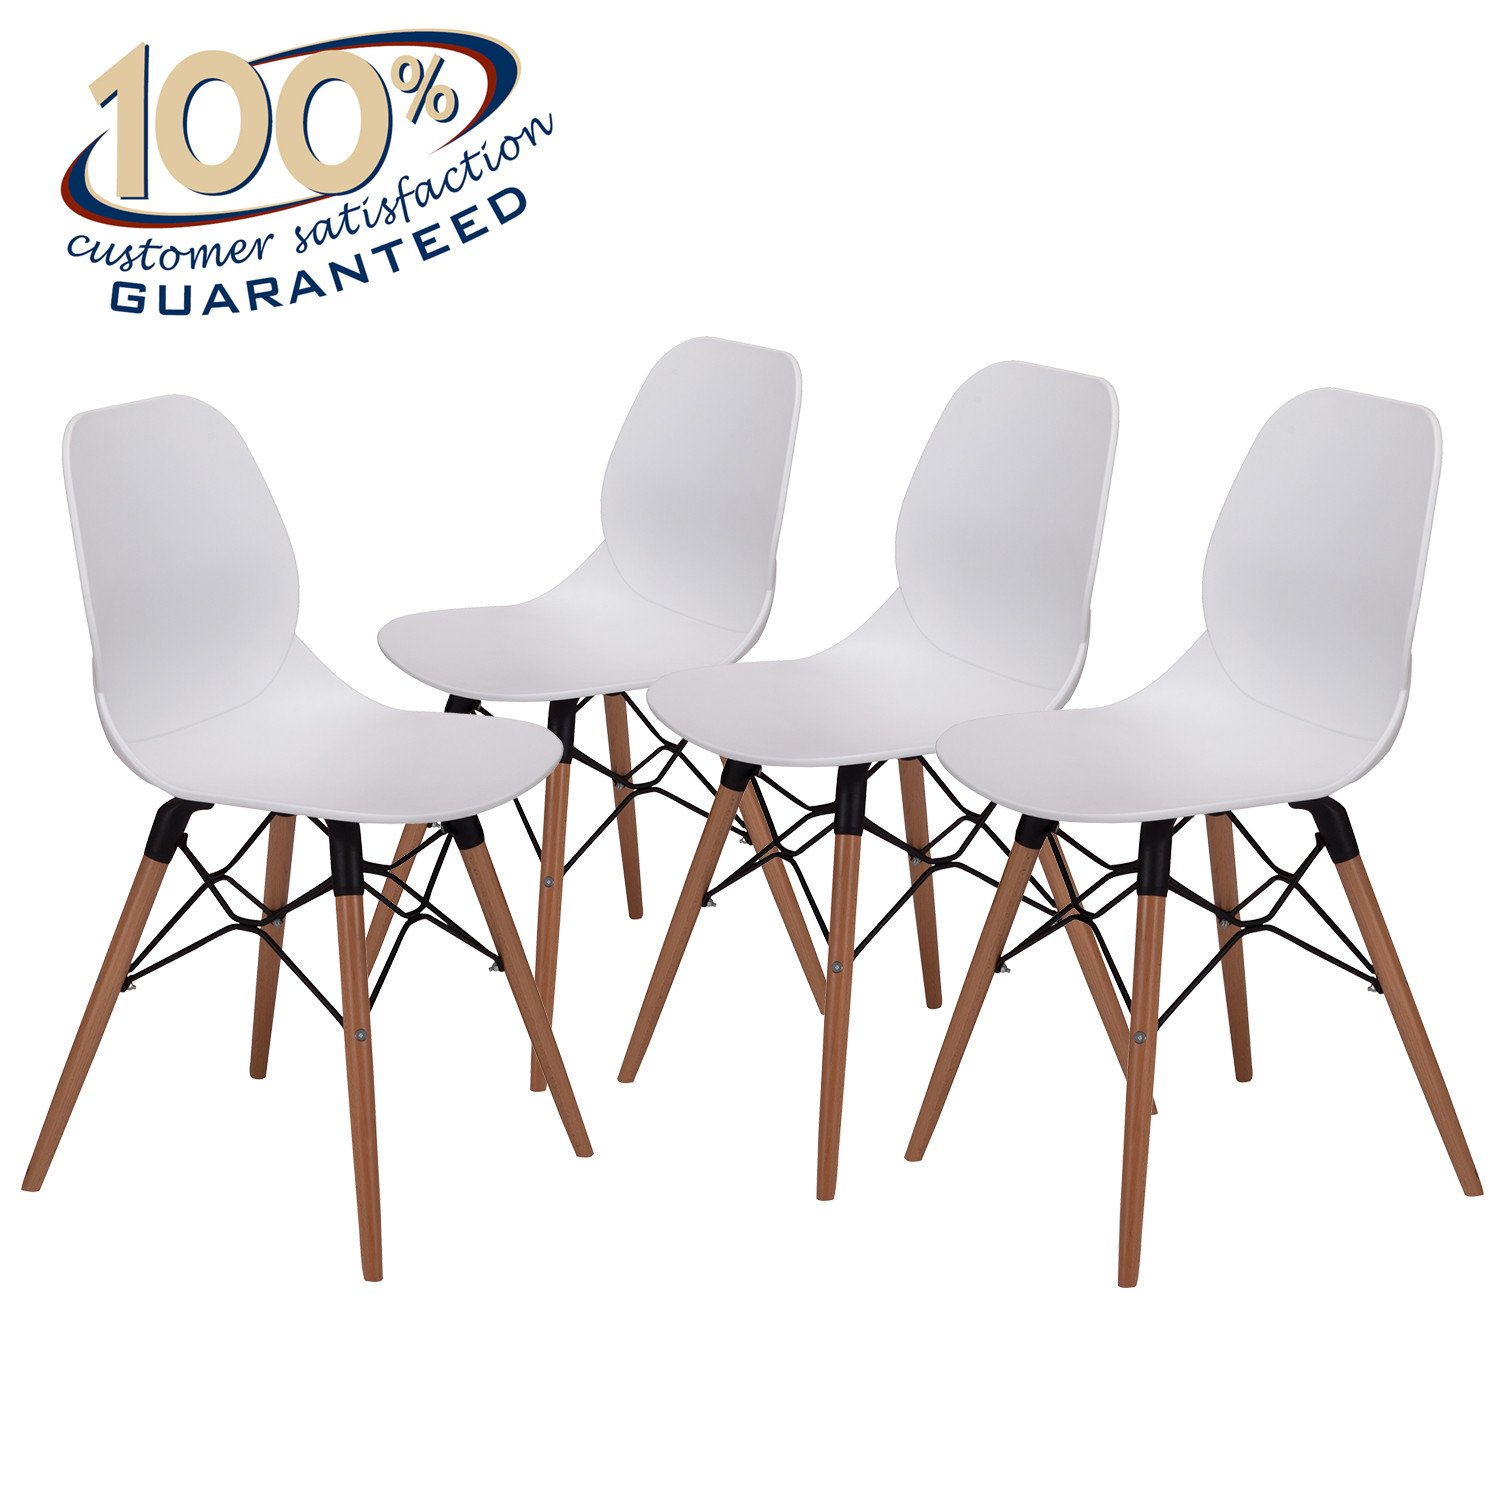 LCH 17.8 Inch Height Modern Dining Chairs - Mid Century Eames Style Chairs - Sturdy Wooden Legs Chairs, 300 lbs Capacity, Upgraded Base, White, Set of 4